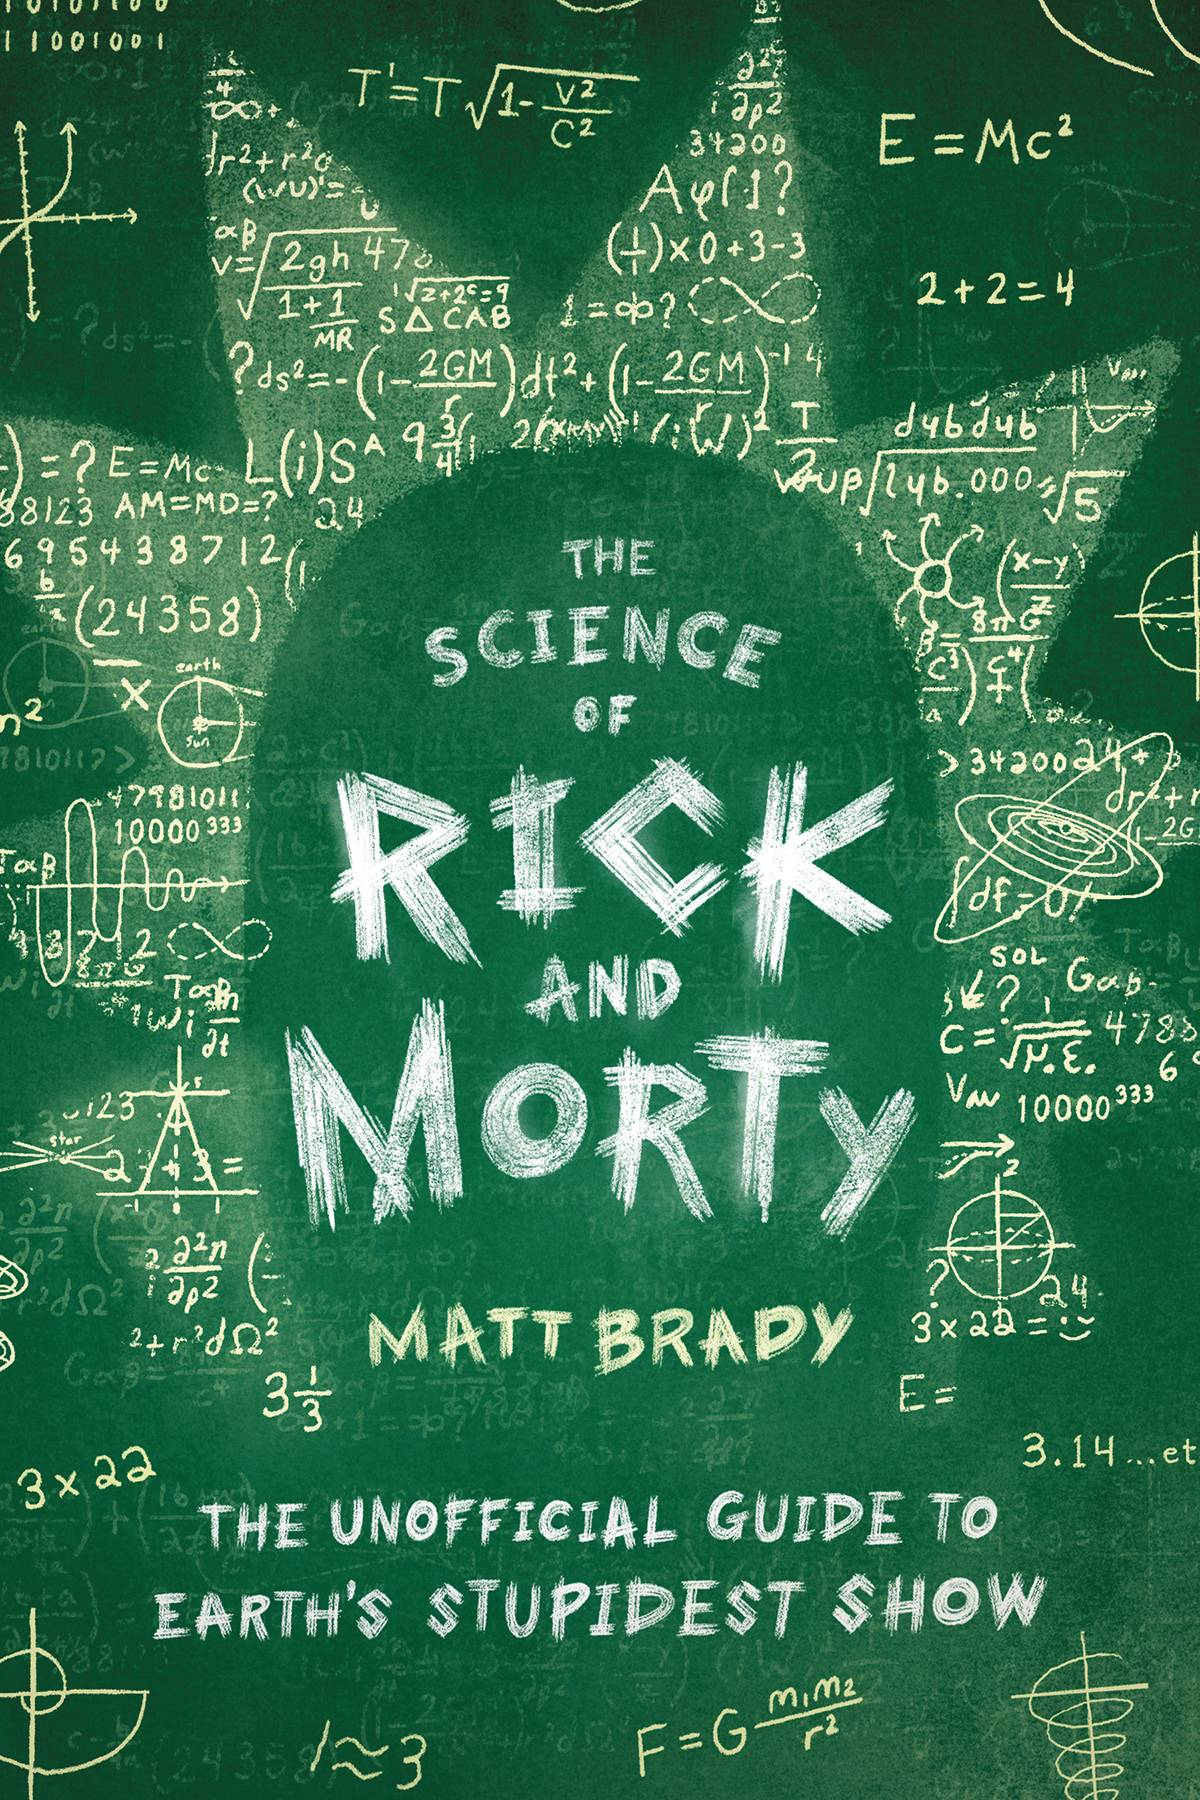 SCIENCE OF RICK & MORTY UNOFF GUIDE EARTHS STUPIDEST SHOW (C